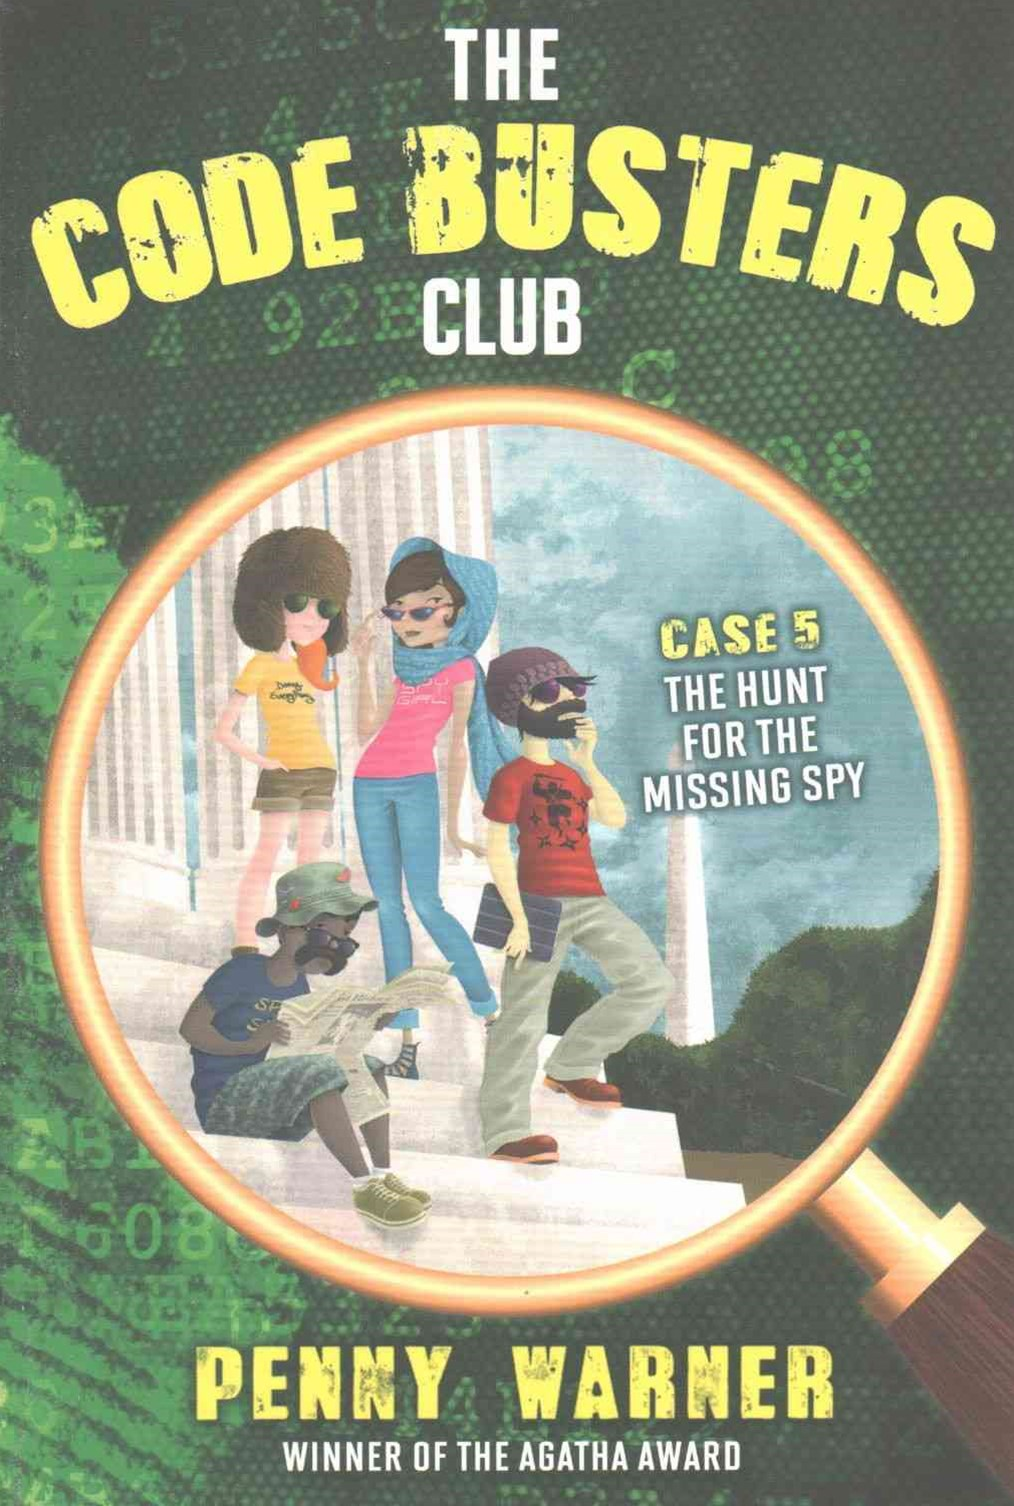 The Hunt for the Missing Spy - The Code Busters Club